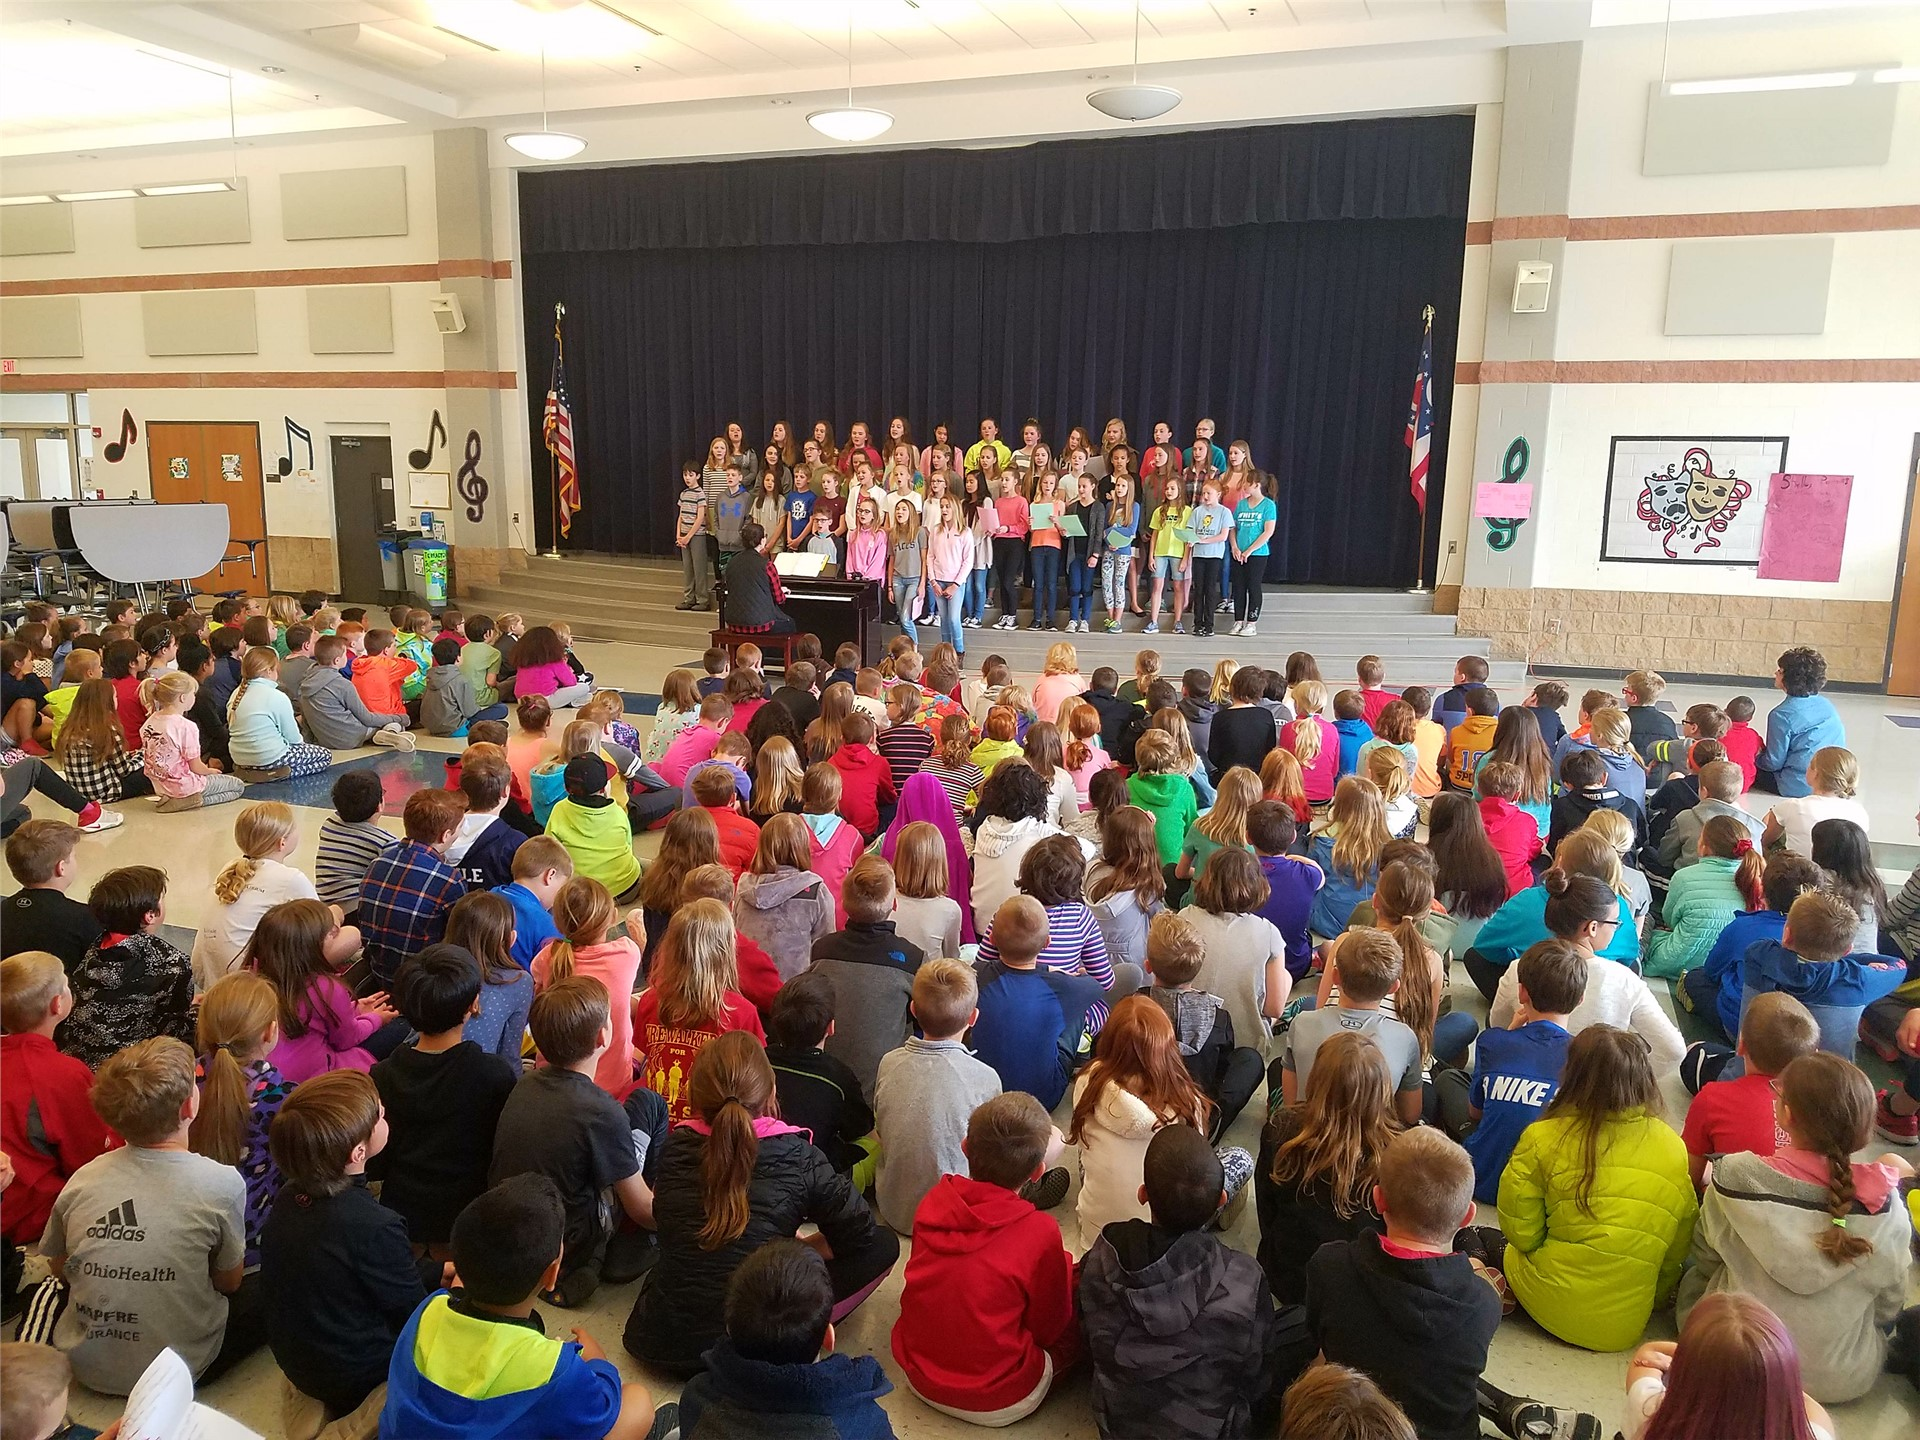 3rd Graders Enjoy Concert During Tour of GIS